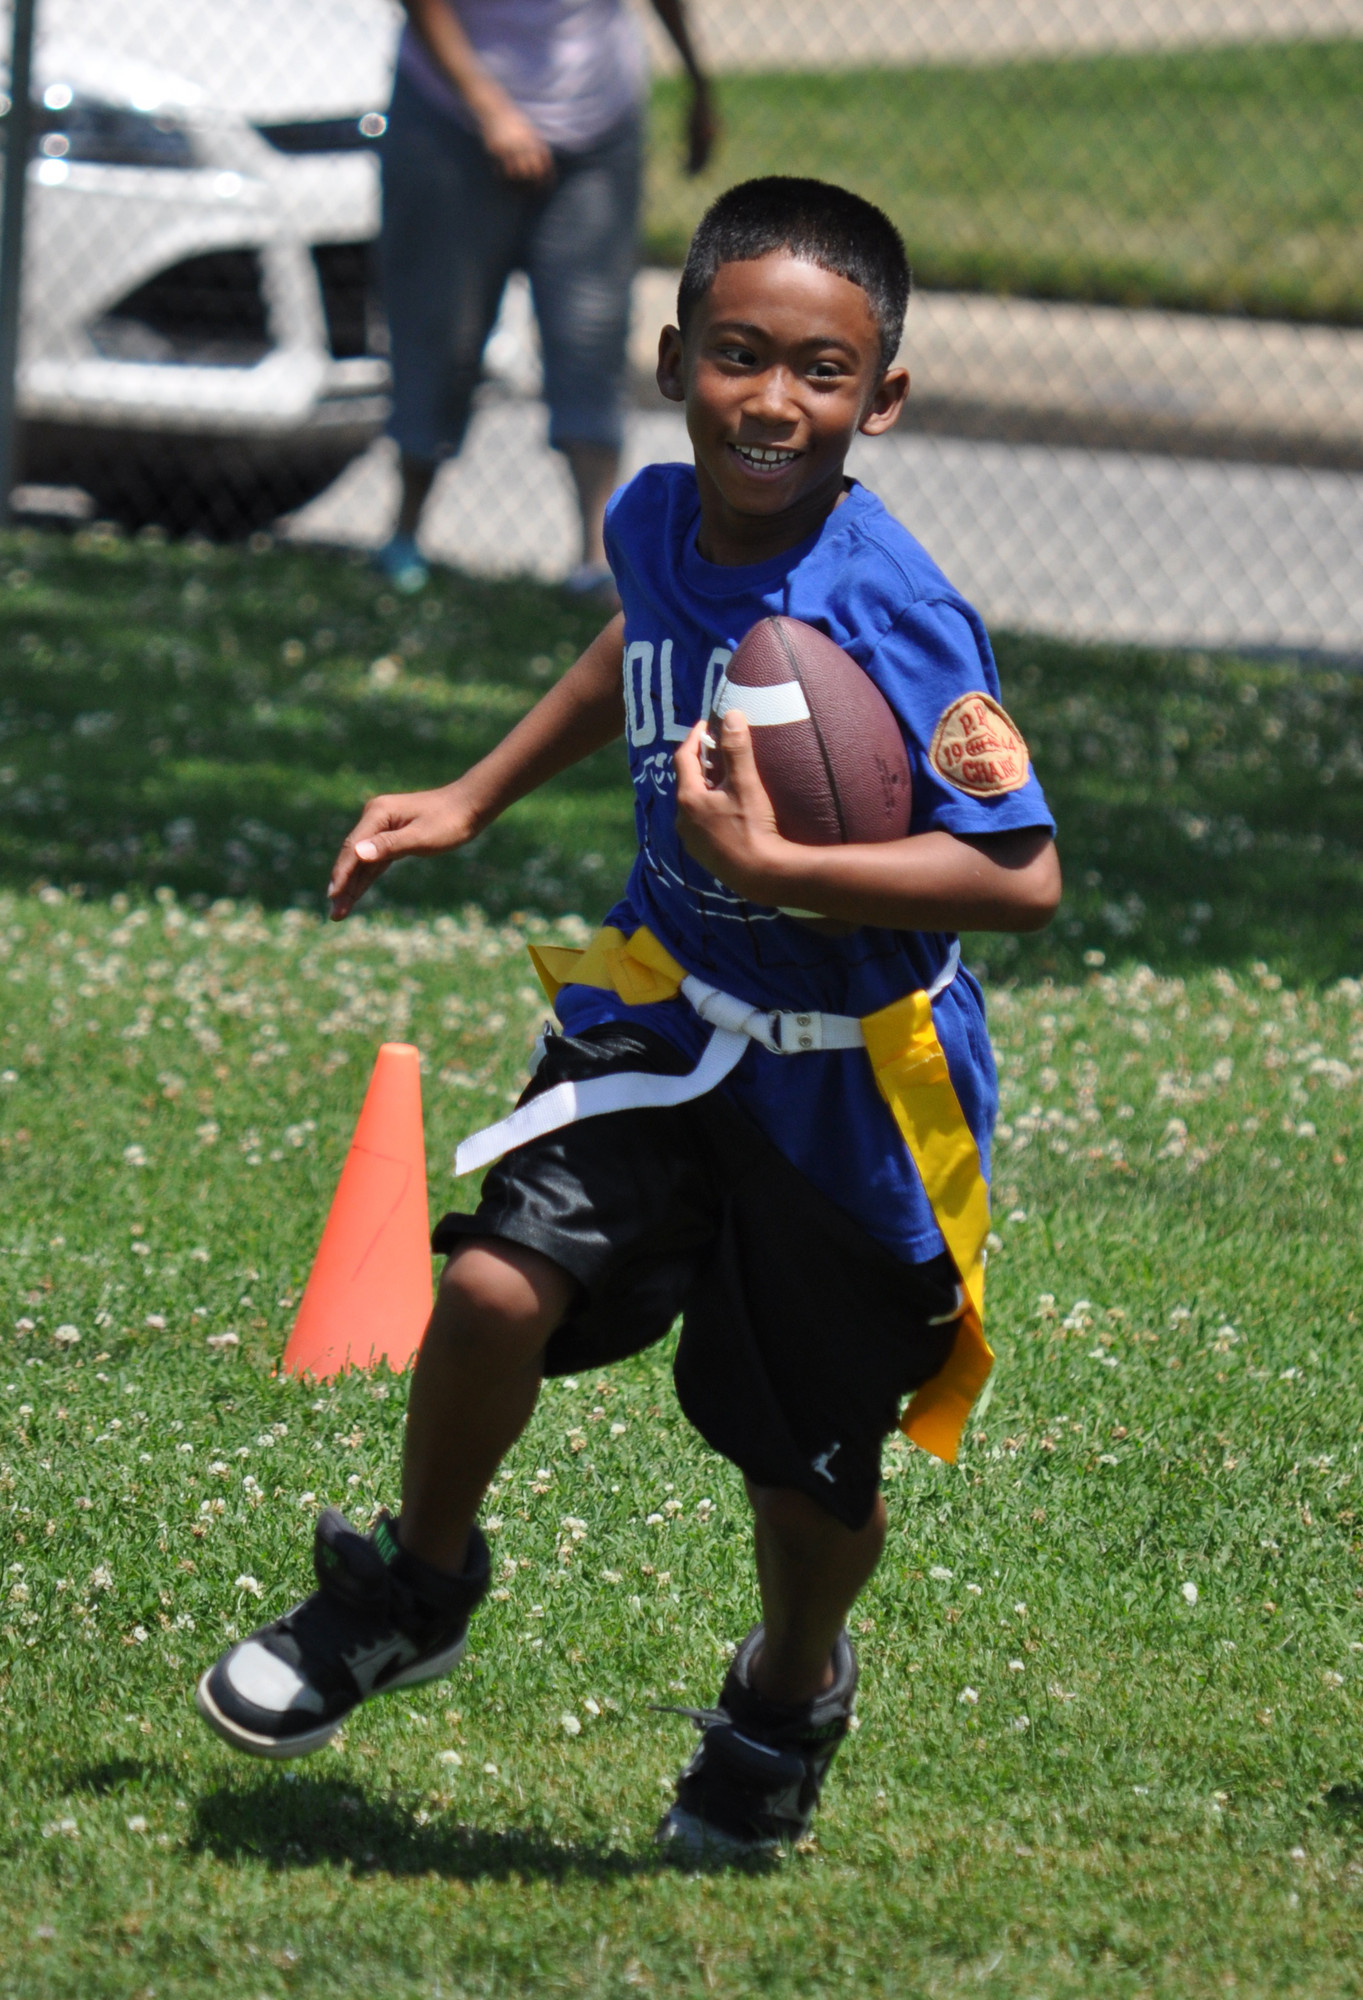 Justin Downer, 9, of Valley Stream participated in the flag football camp.